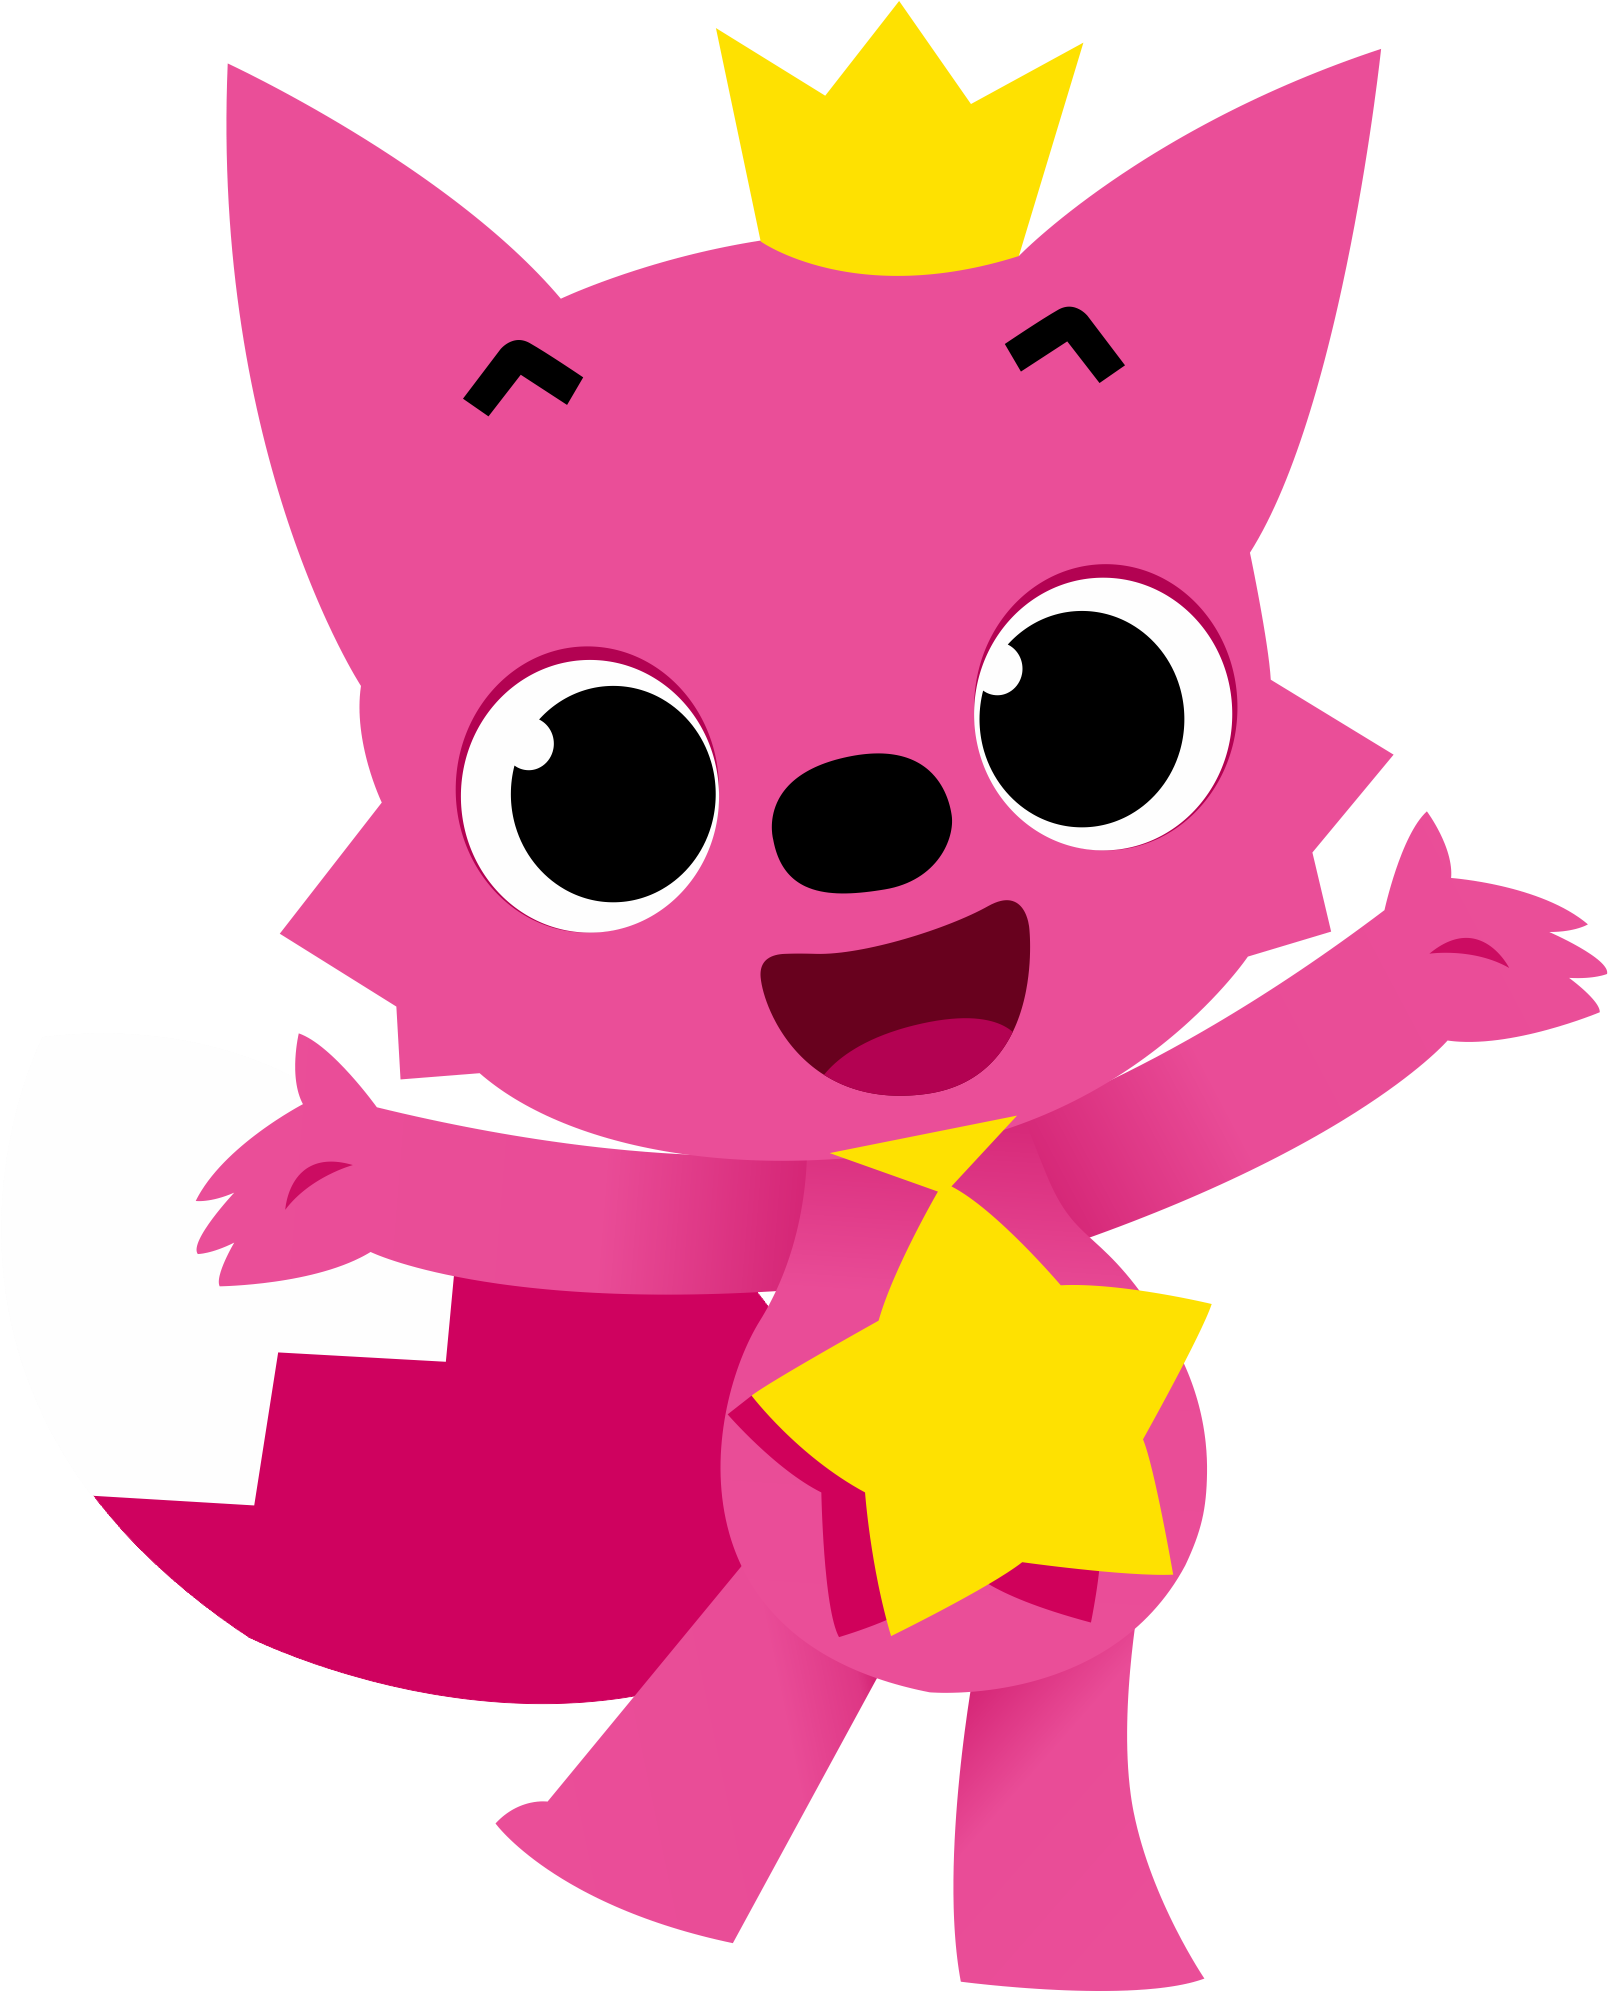 Pinkfong Baby Sharks Characters - Pinkfong Baby Shark Png ...